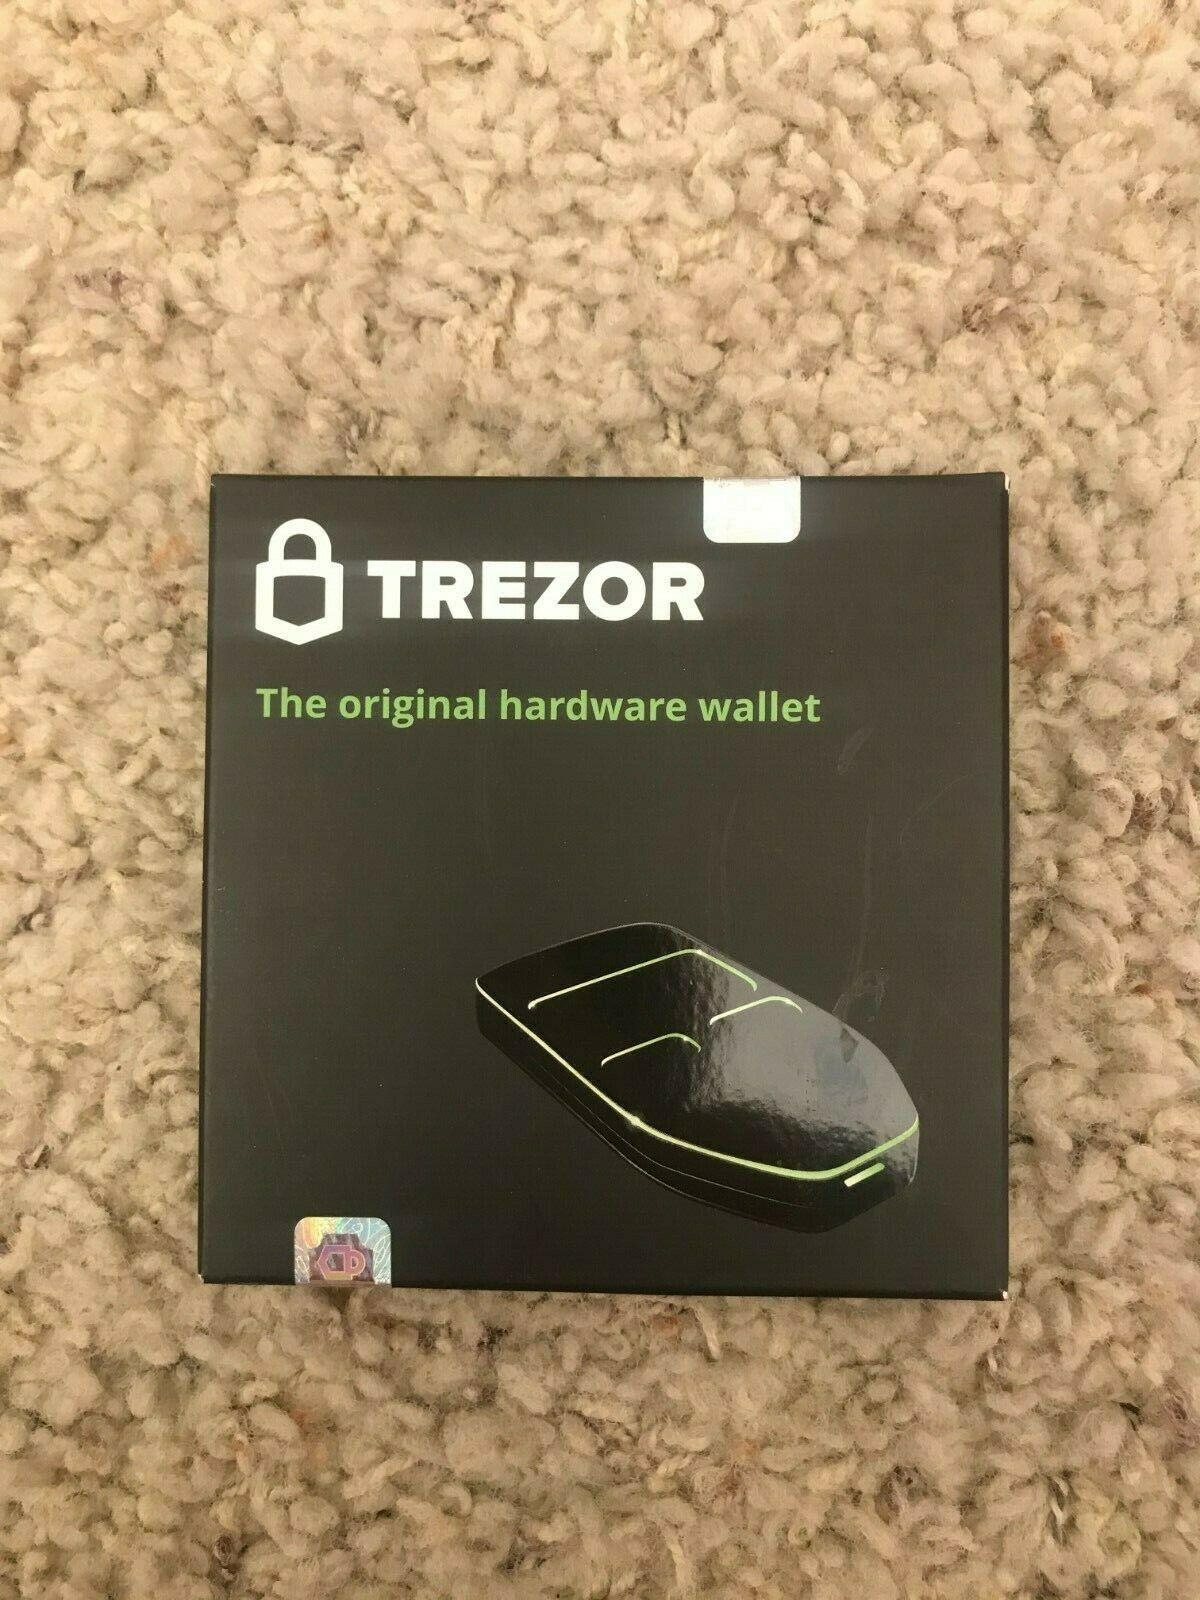 Trezor Hardware wallet vault safe for digital virtual currency Bitcoin Litecoin 1